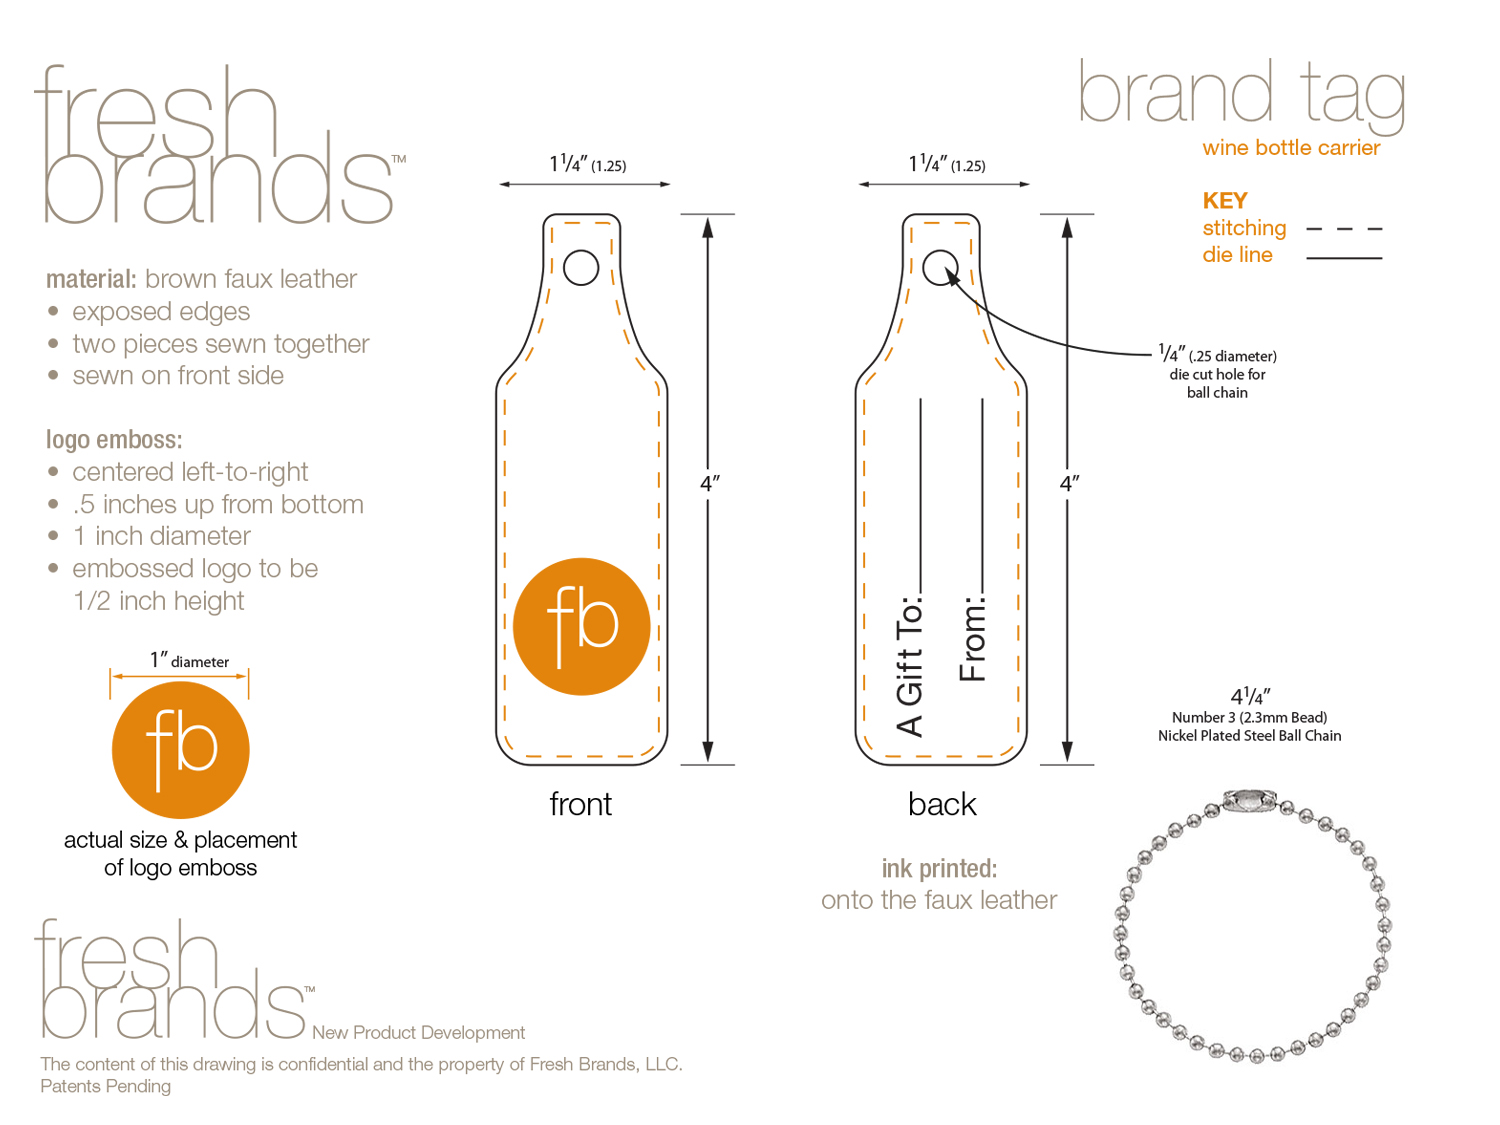 000206_fb_winebottle_carrier_specification_drawing.jpg